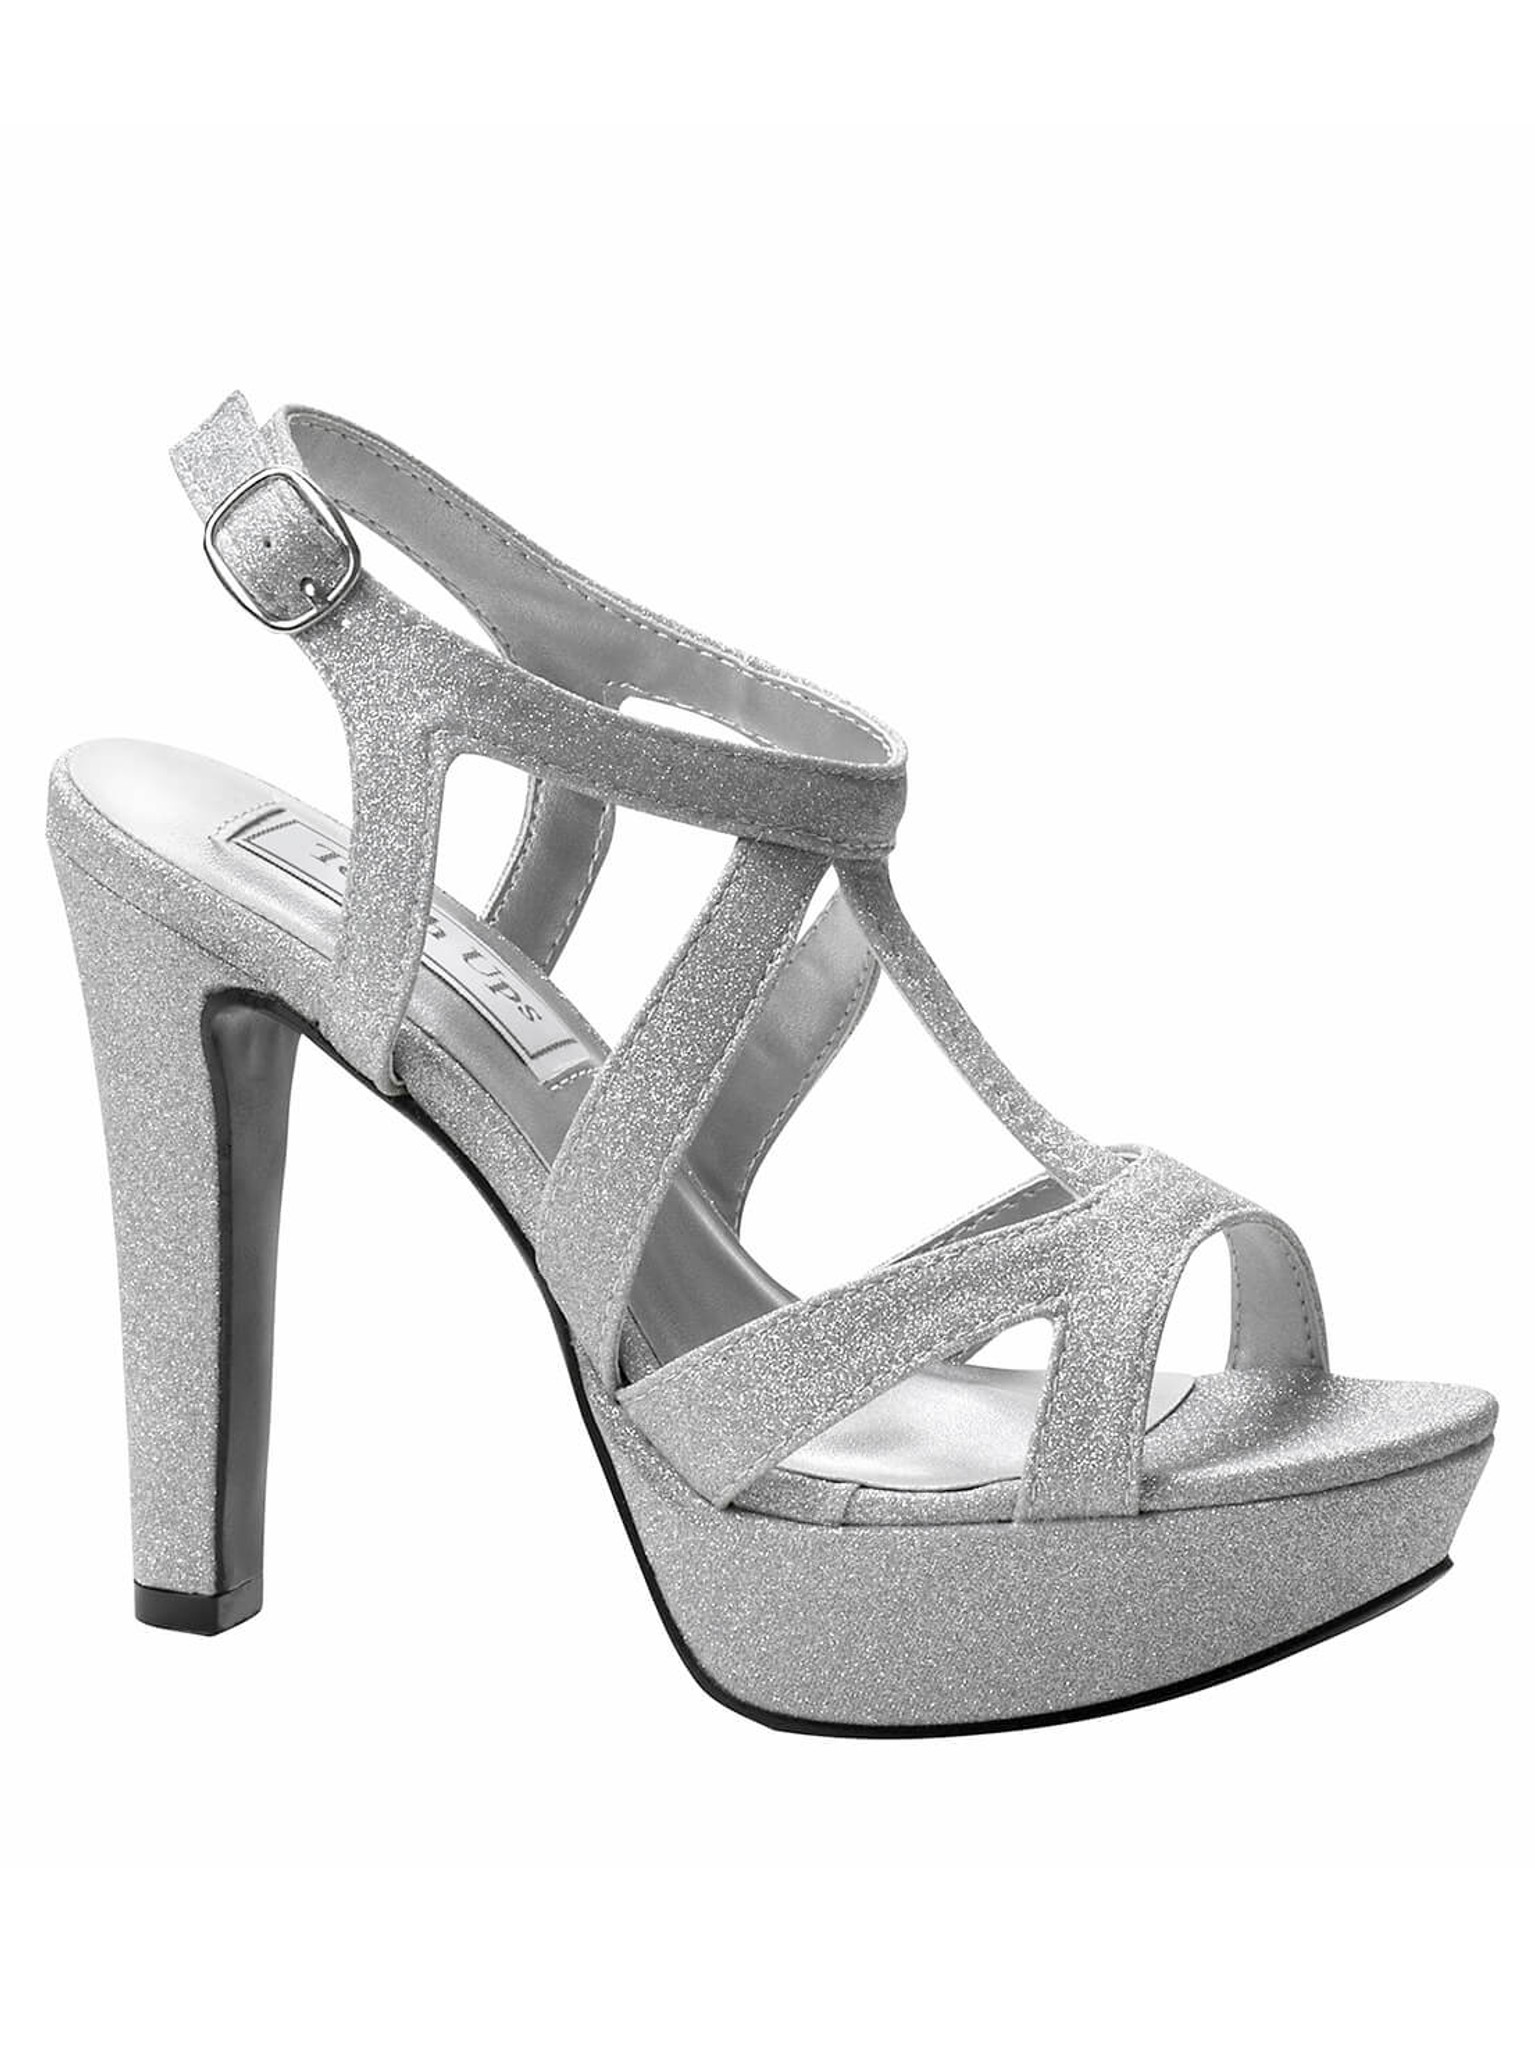 Silver platform sandal shoes by touch ups queenie